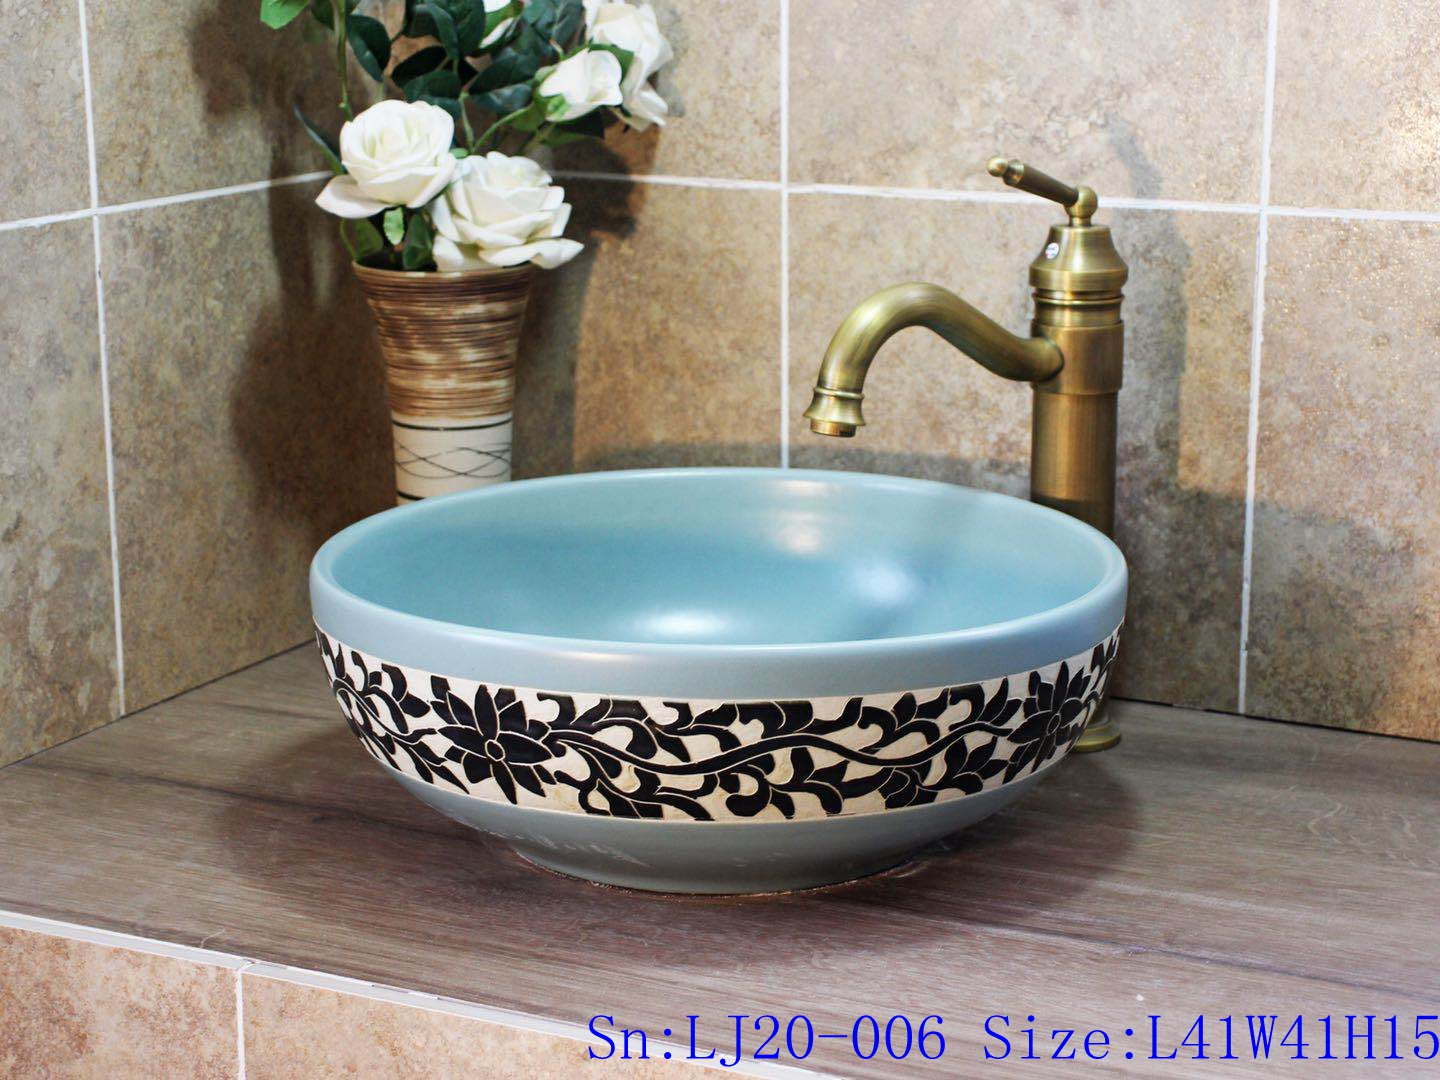 LJ20-006 Fashion blue and black flowers round shape ceramic sink